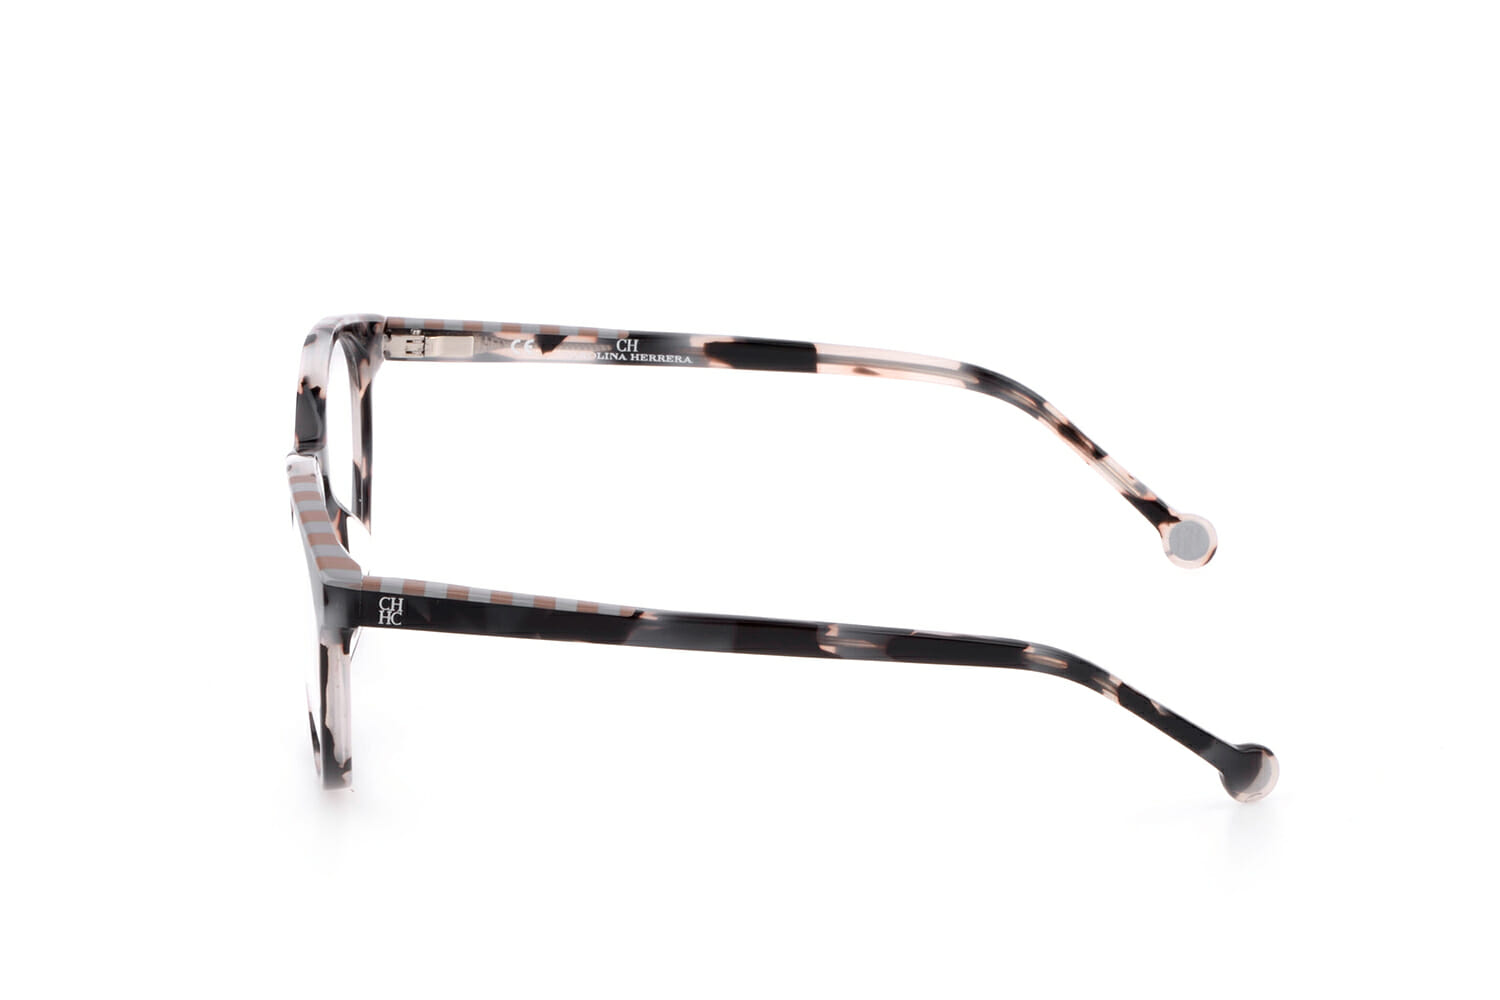 CH CAROLINA HERRERA EYEWEAR WOMEN SIDE